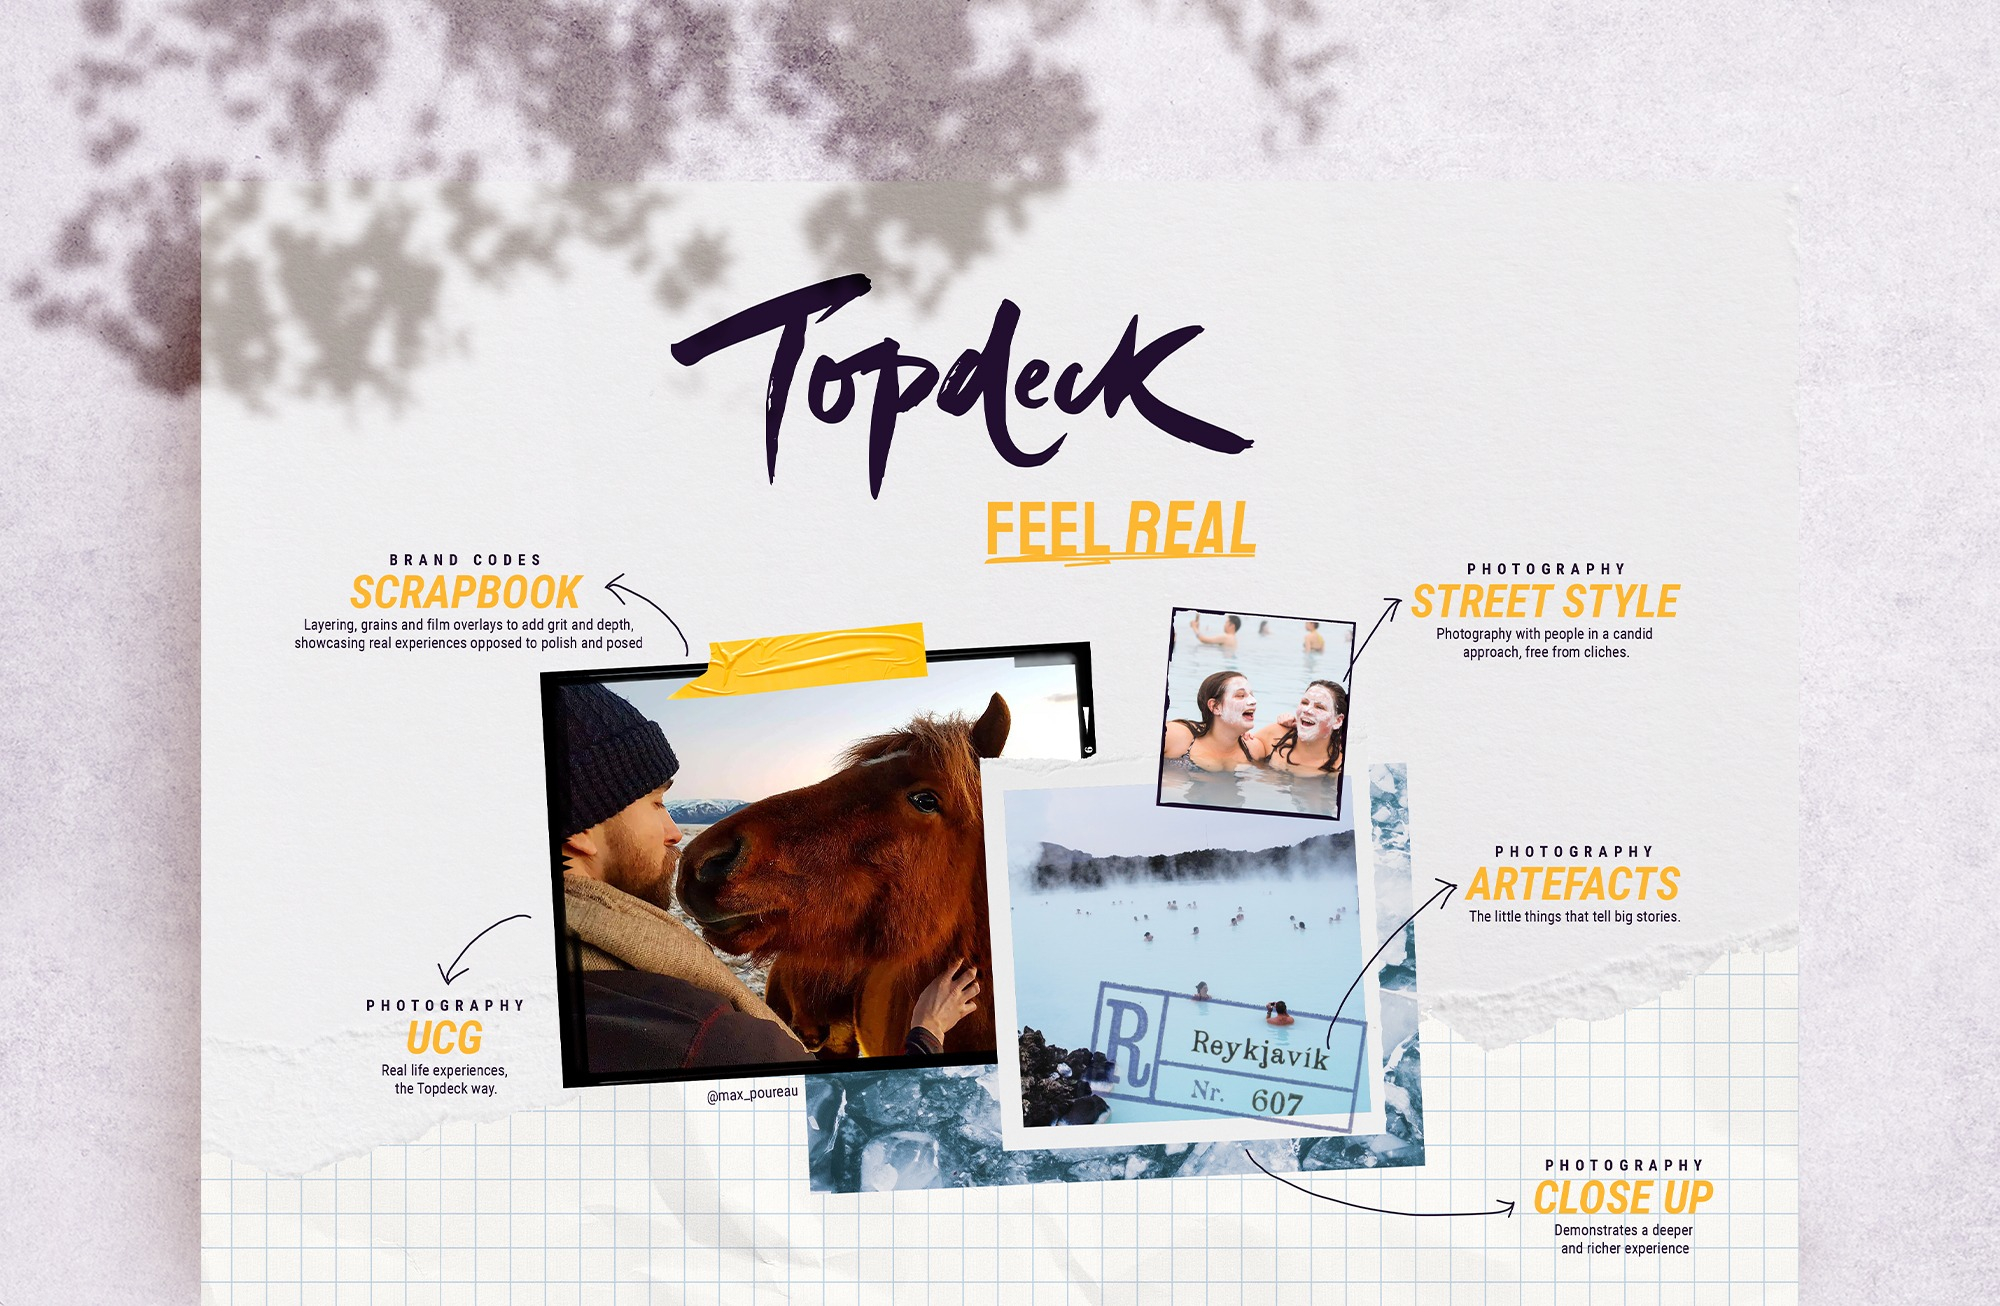 Freelance Topdeck Feel Real new brand reposition